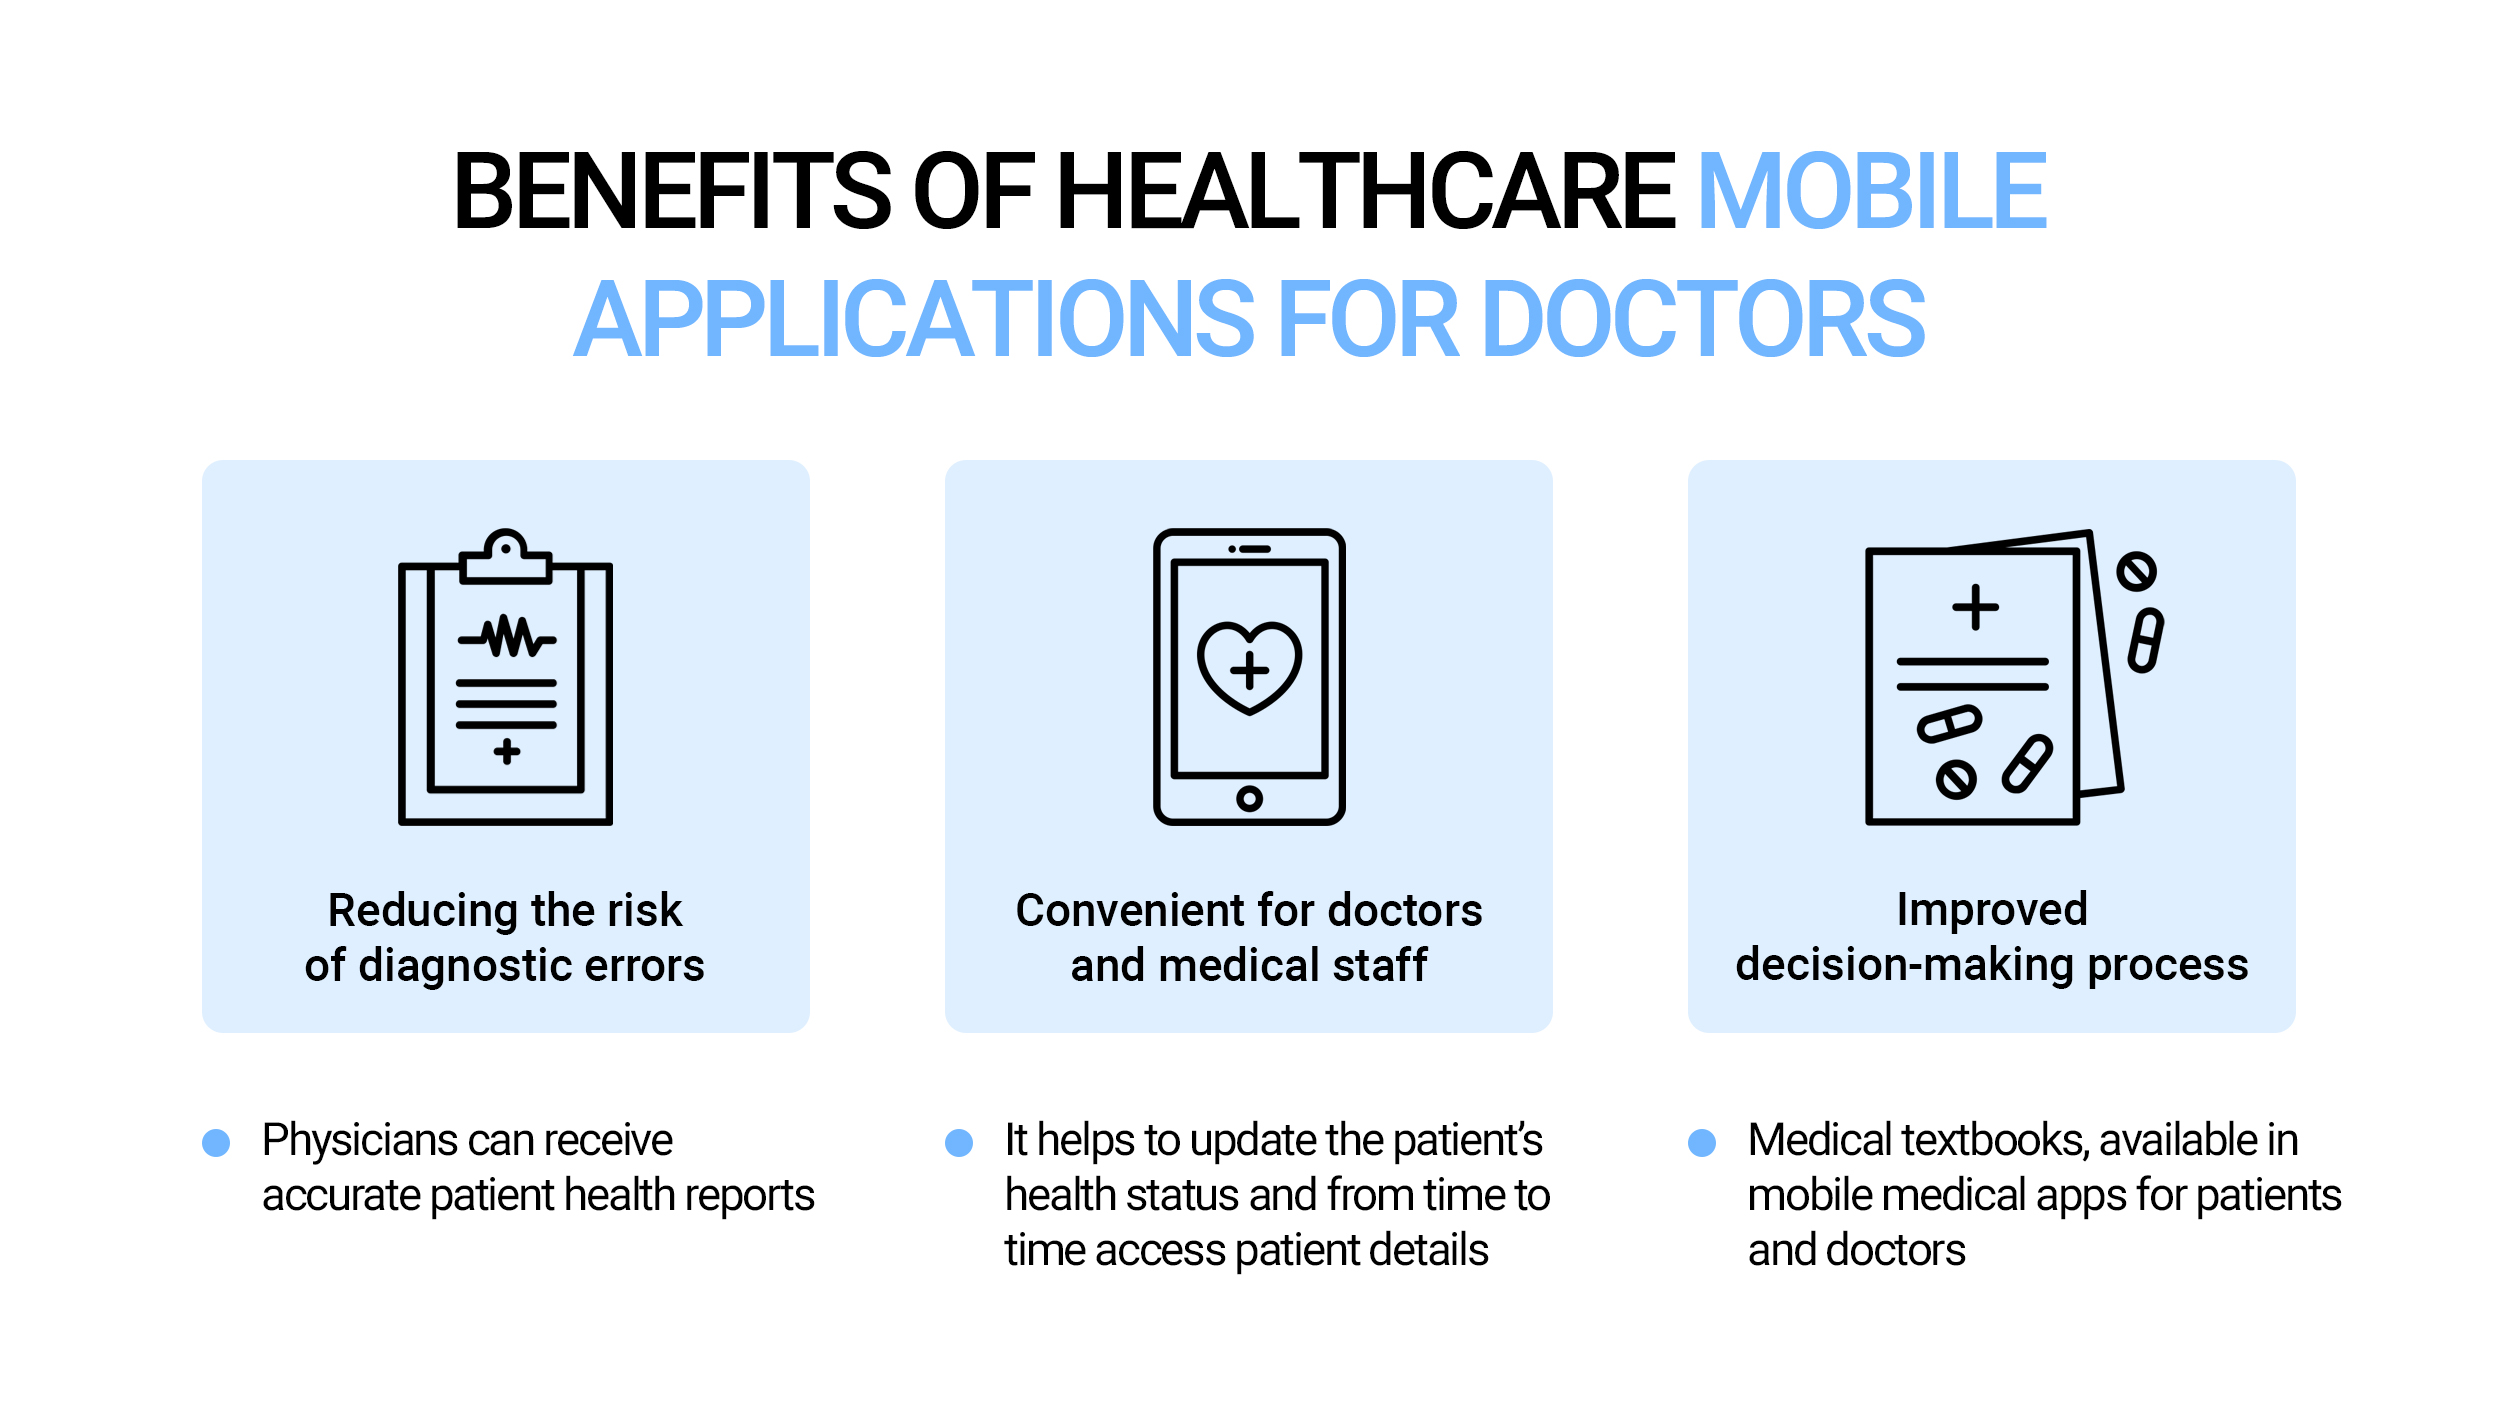 Benefits of healthcare mobile applications for doctors